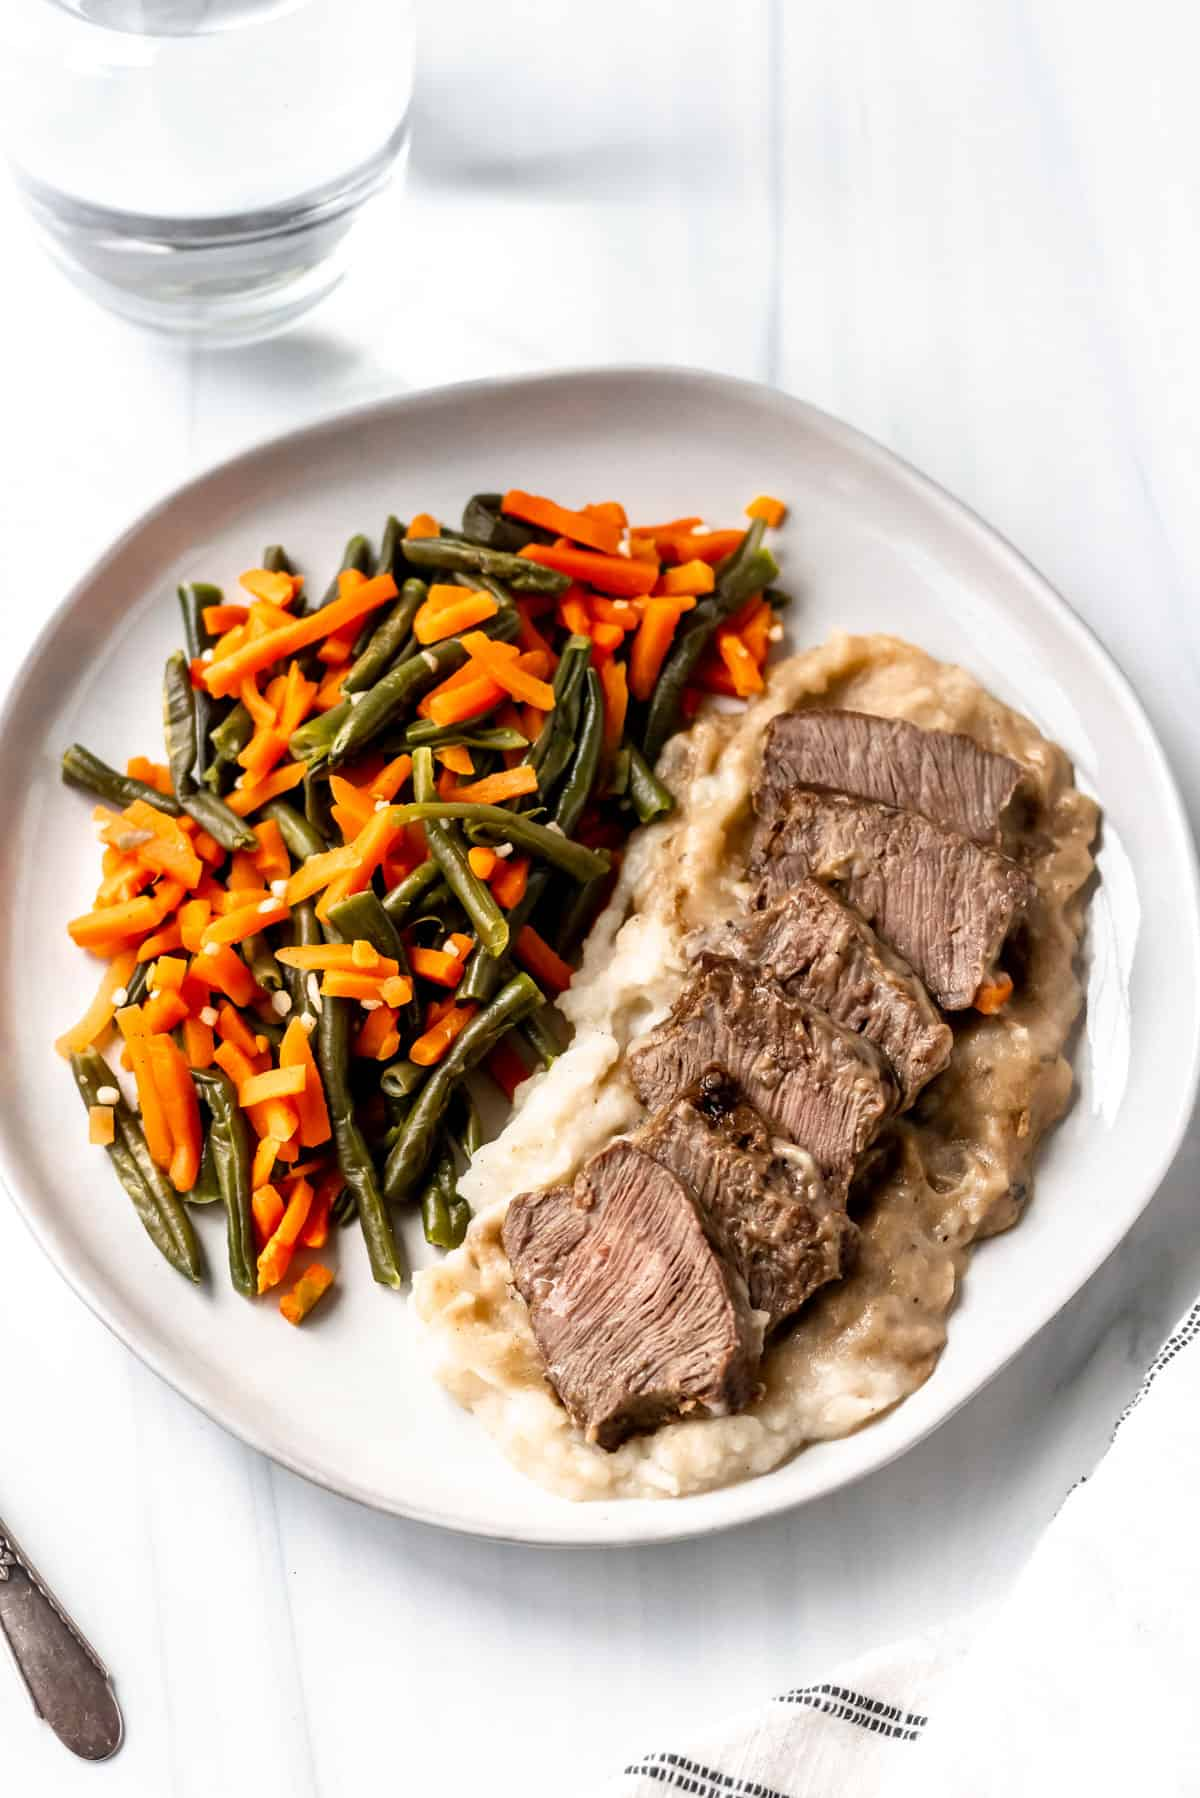 Freshly steak peppercorn, mashed potatoes, green beans and carrots on a white plate